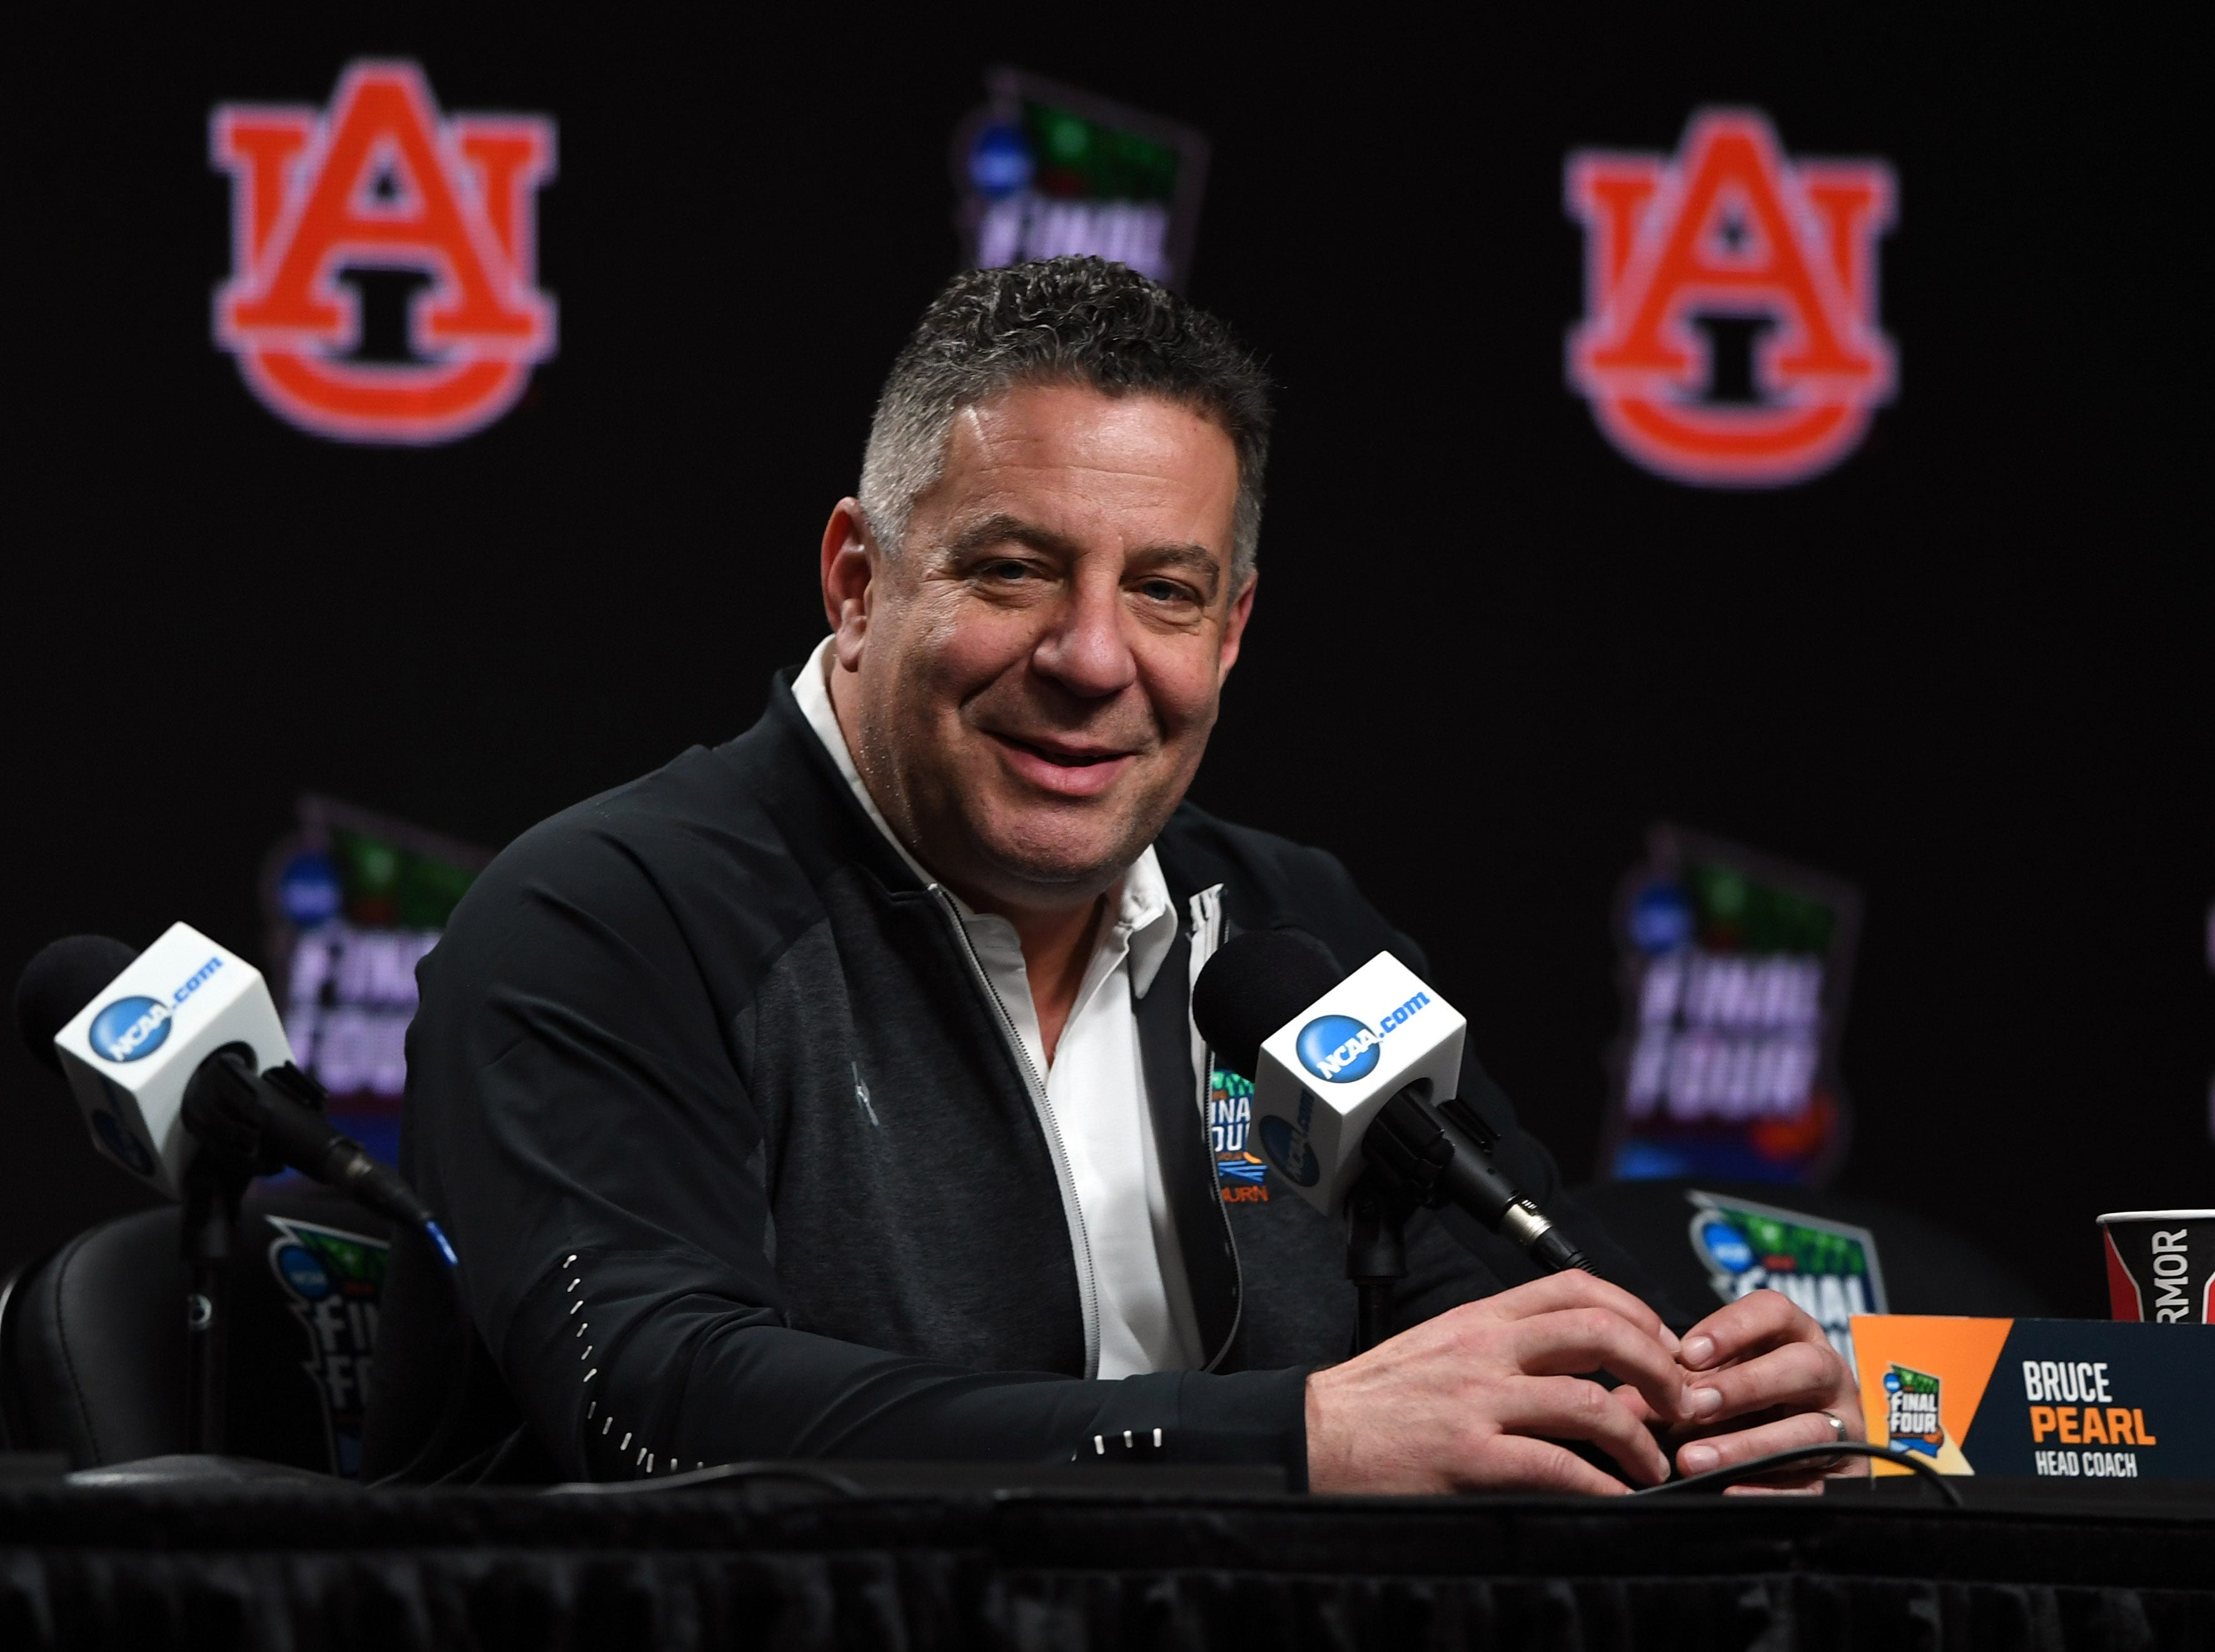 Apr 5, 2019; Minneapolis, MN, USA; Auburn Tigers head coach Bruce Pearl during a press conference before practice for the 2019 men's Final Four at US Bank Stadium. Mandatory Credit: Shanna Lockwood-USA TODAY Sports